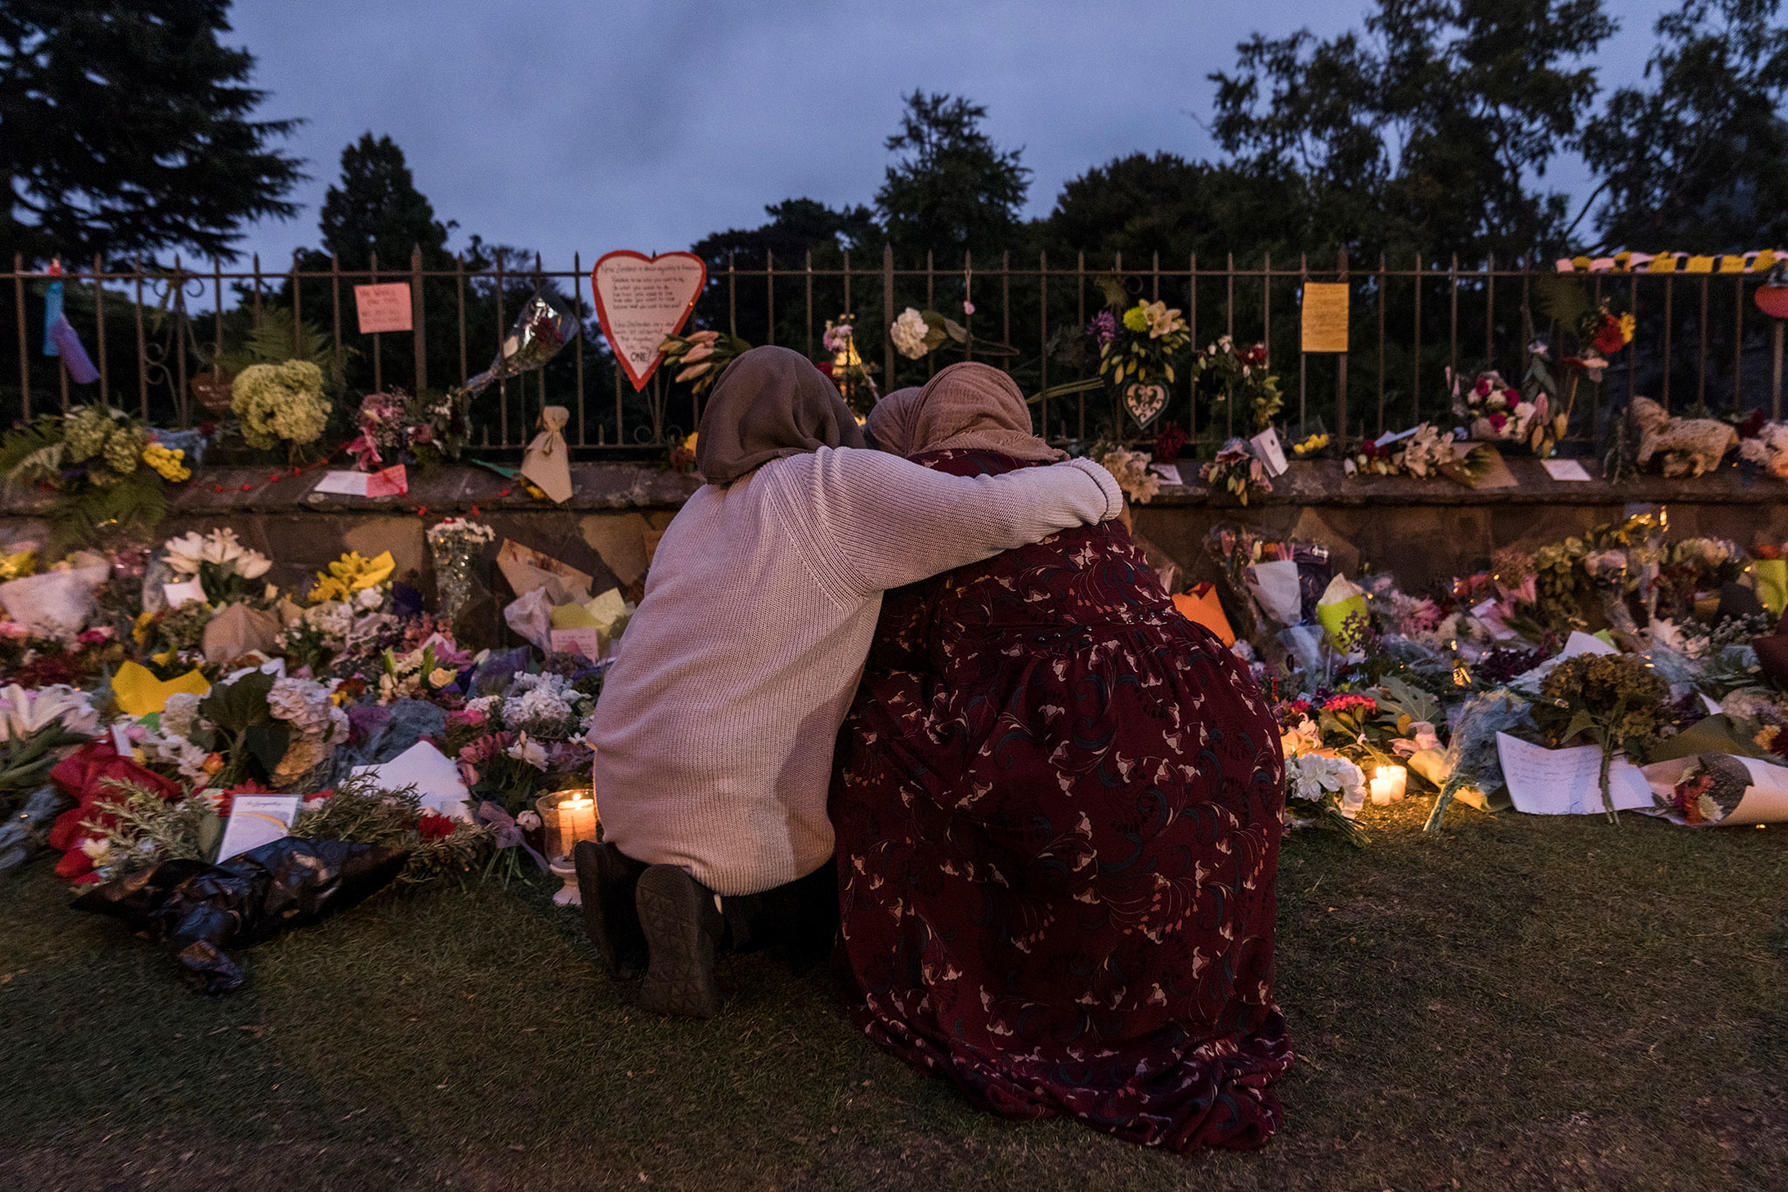 Mourners comfort each other at a makeshift memorial near Al Noor mosque in Christchurch, New Zealand, March 17, 2019.  (Adam Dean/The New York Times)